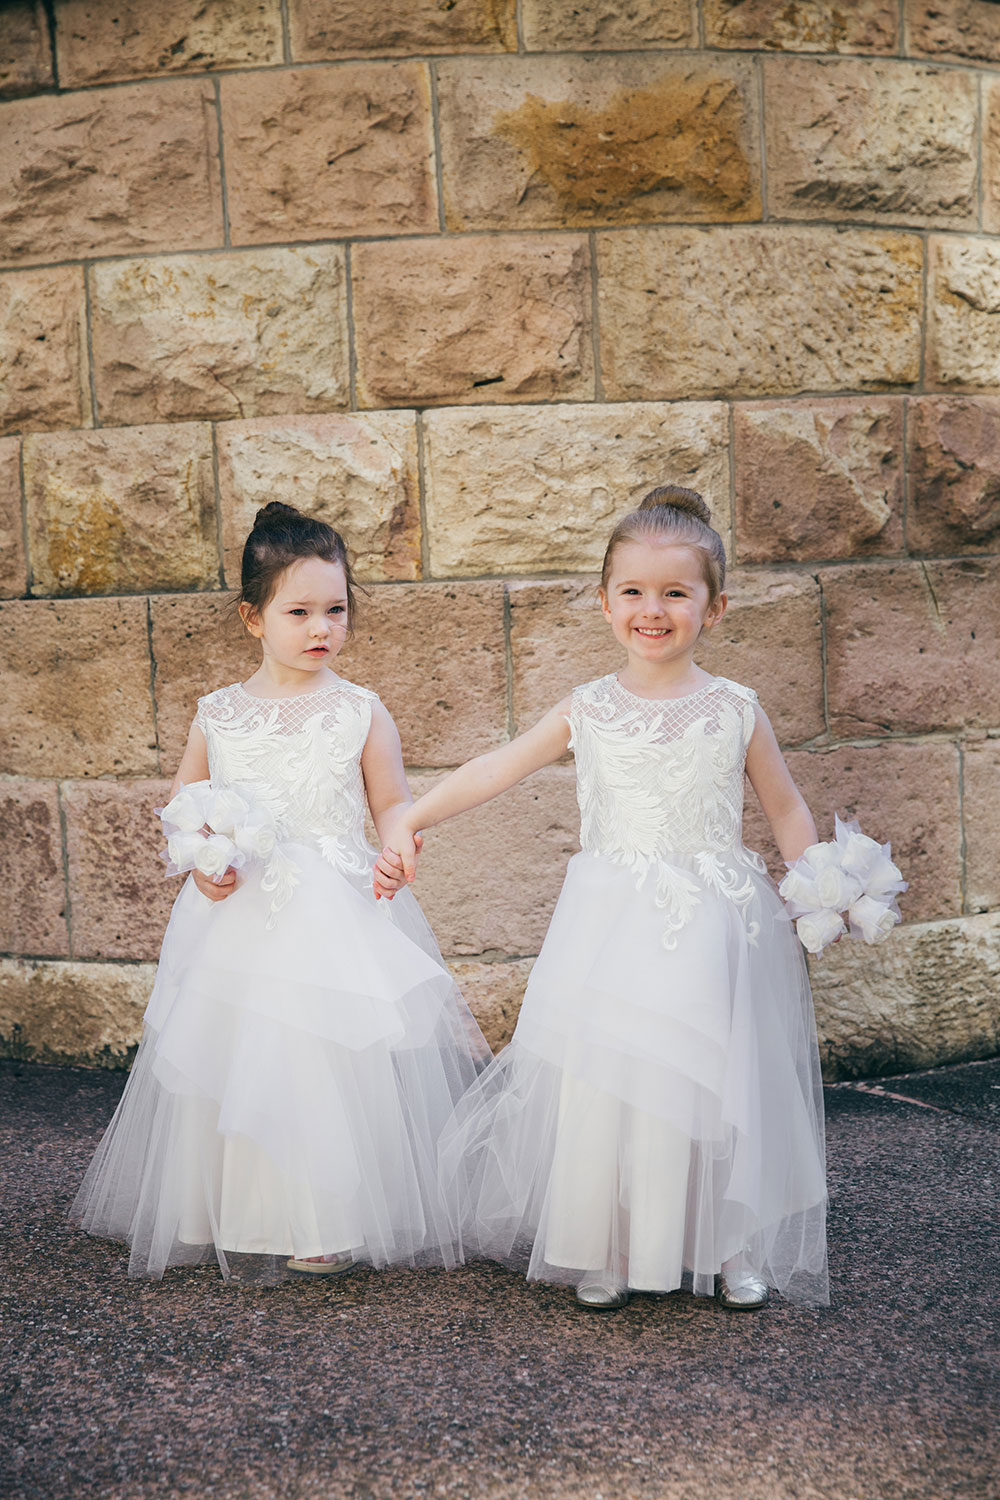 Sweet little flowergirls